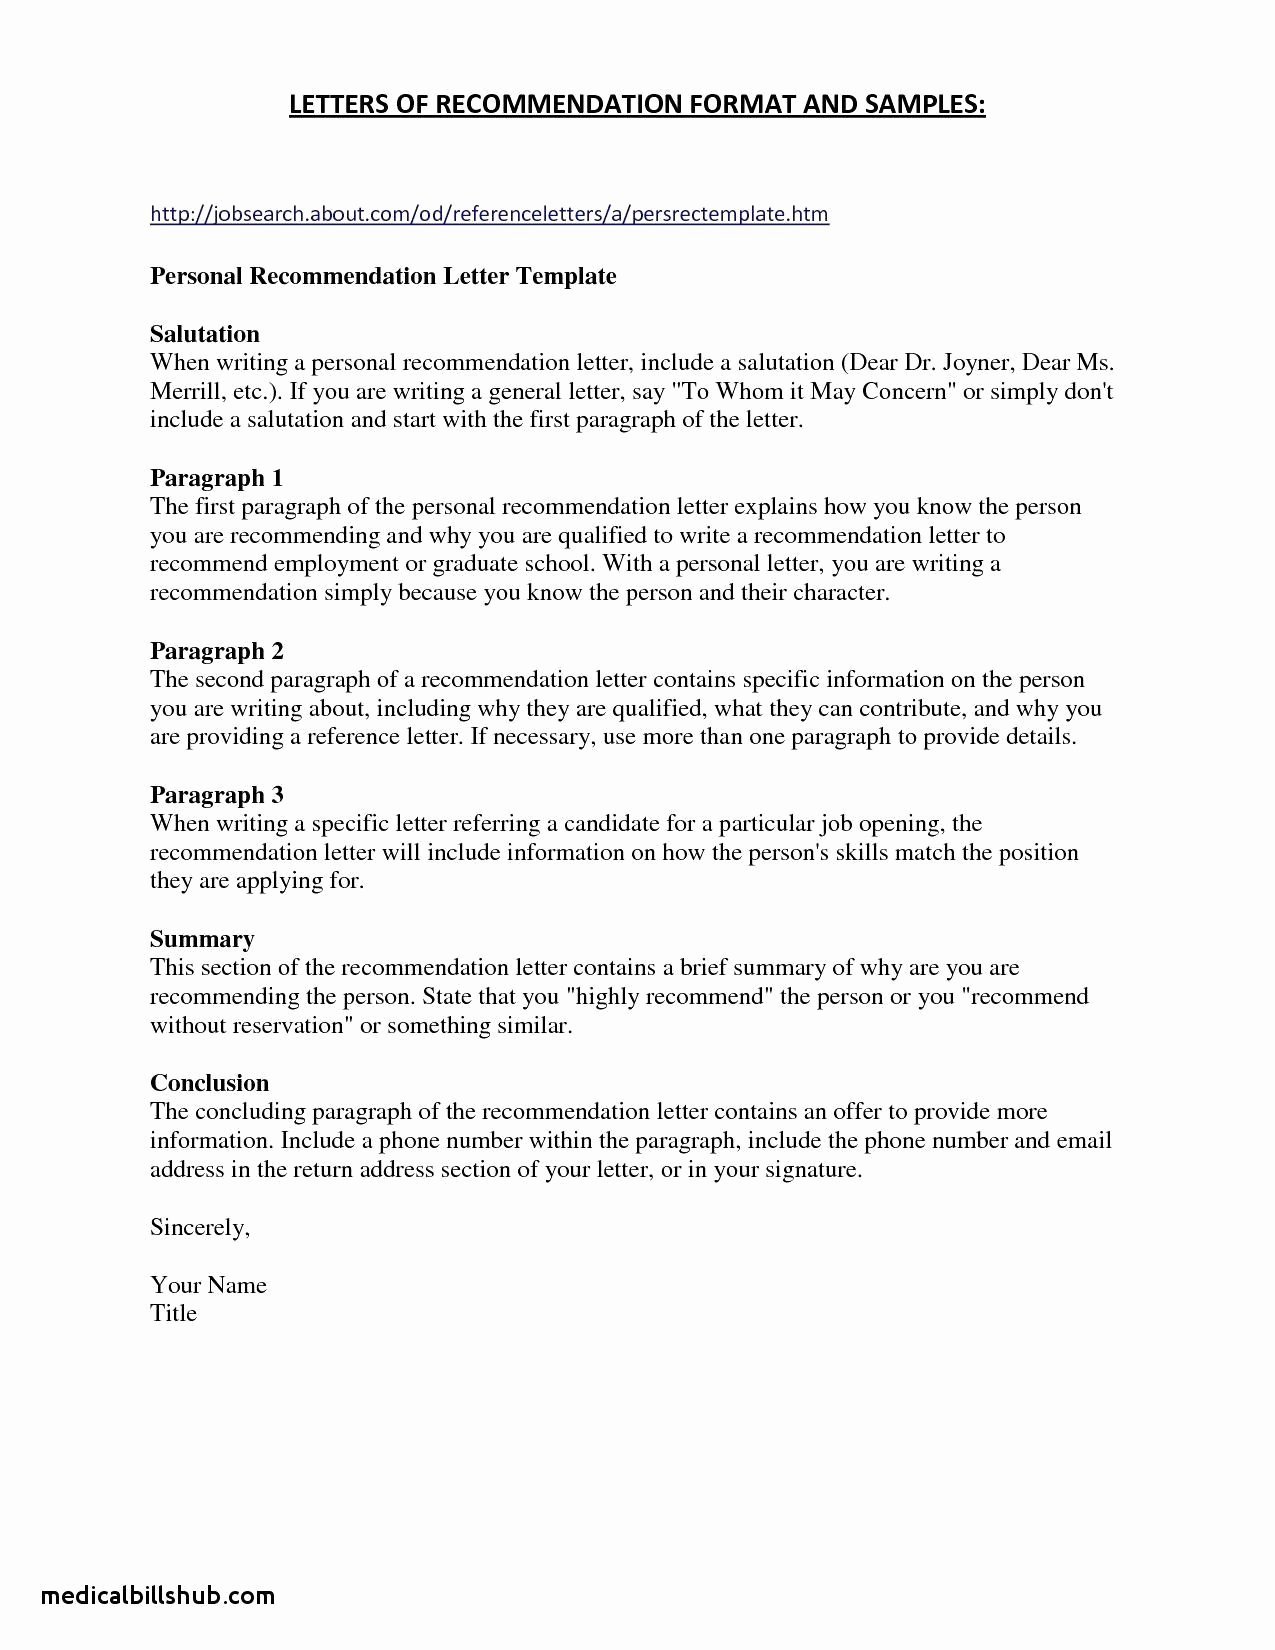 Letter Of Recommendation for Cna Inspirational New Cover Letter for Medical assistant